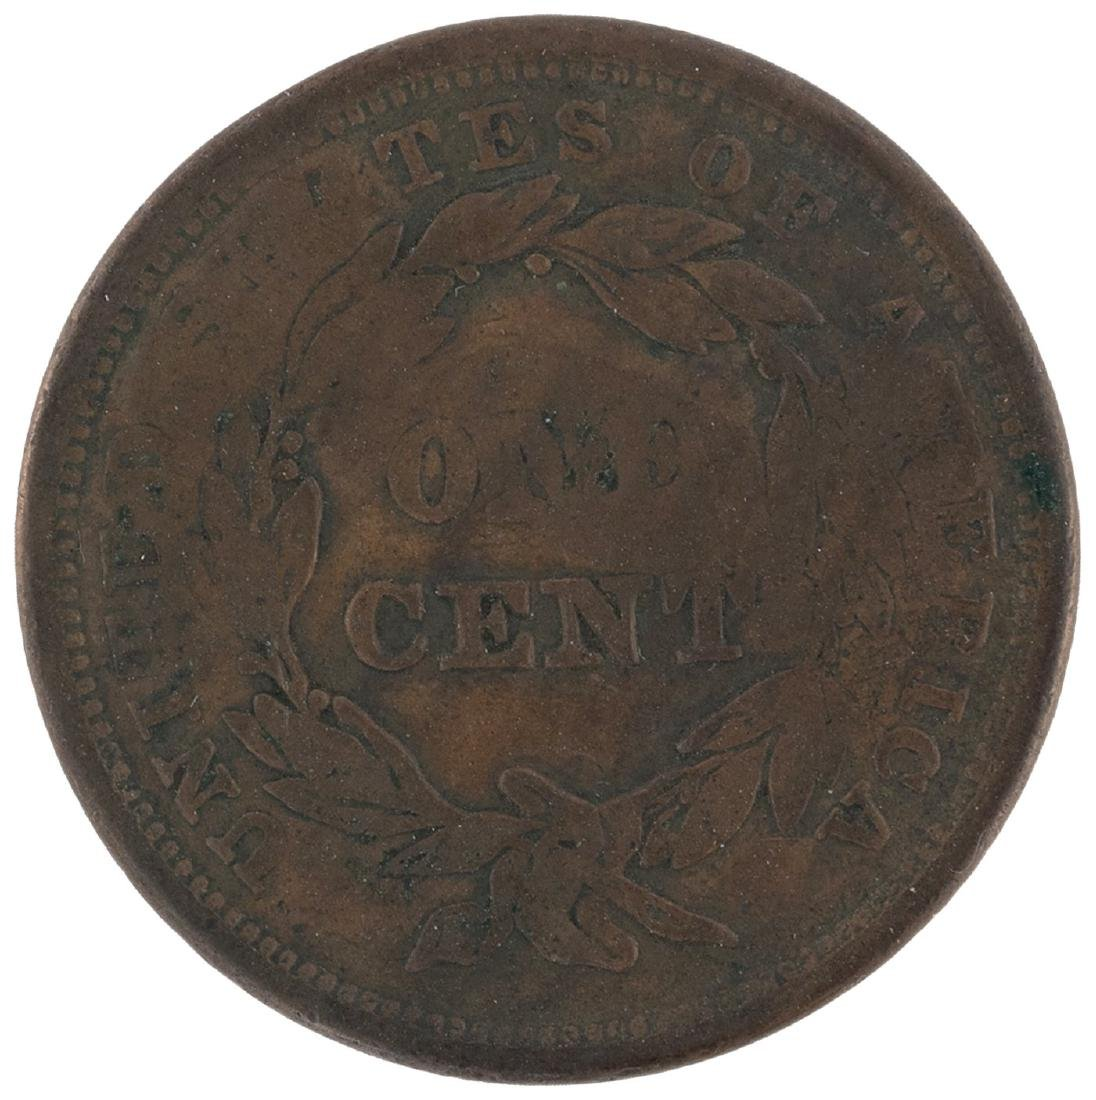 """VOTE THE LAND FREE"" 1844 OR 1848 COUNTERSTAMPED SLOGAN ON U.S. LARGE CENT."